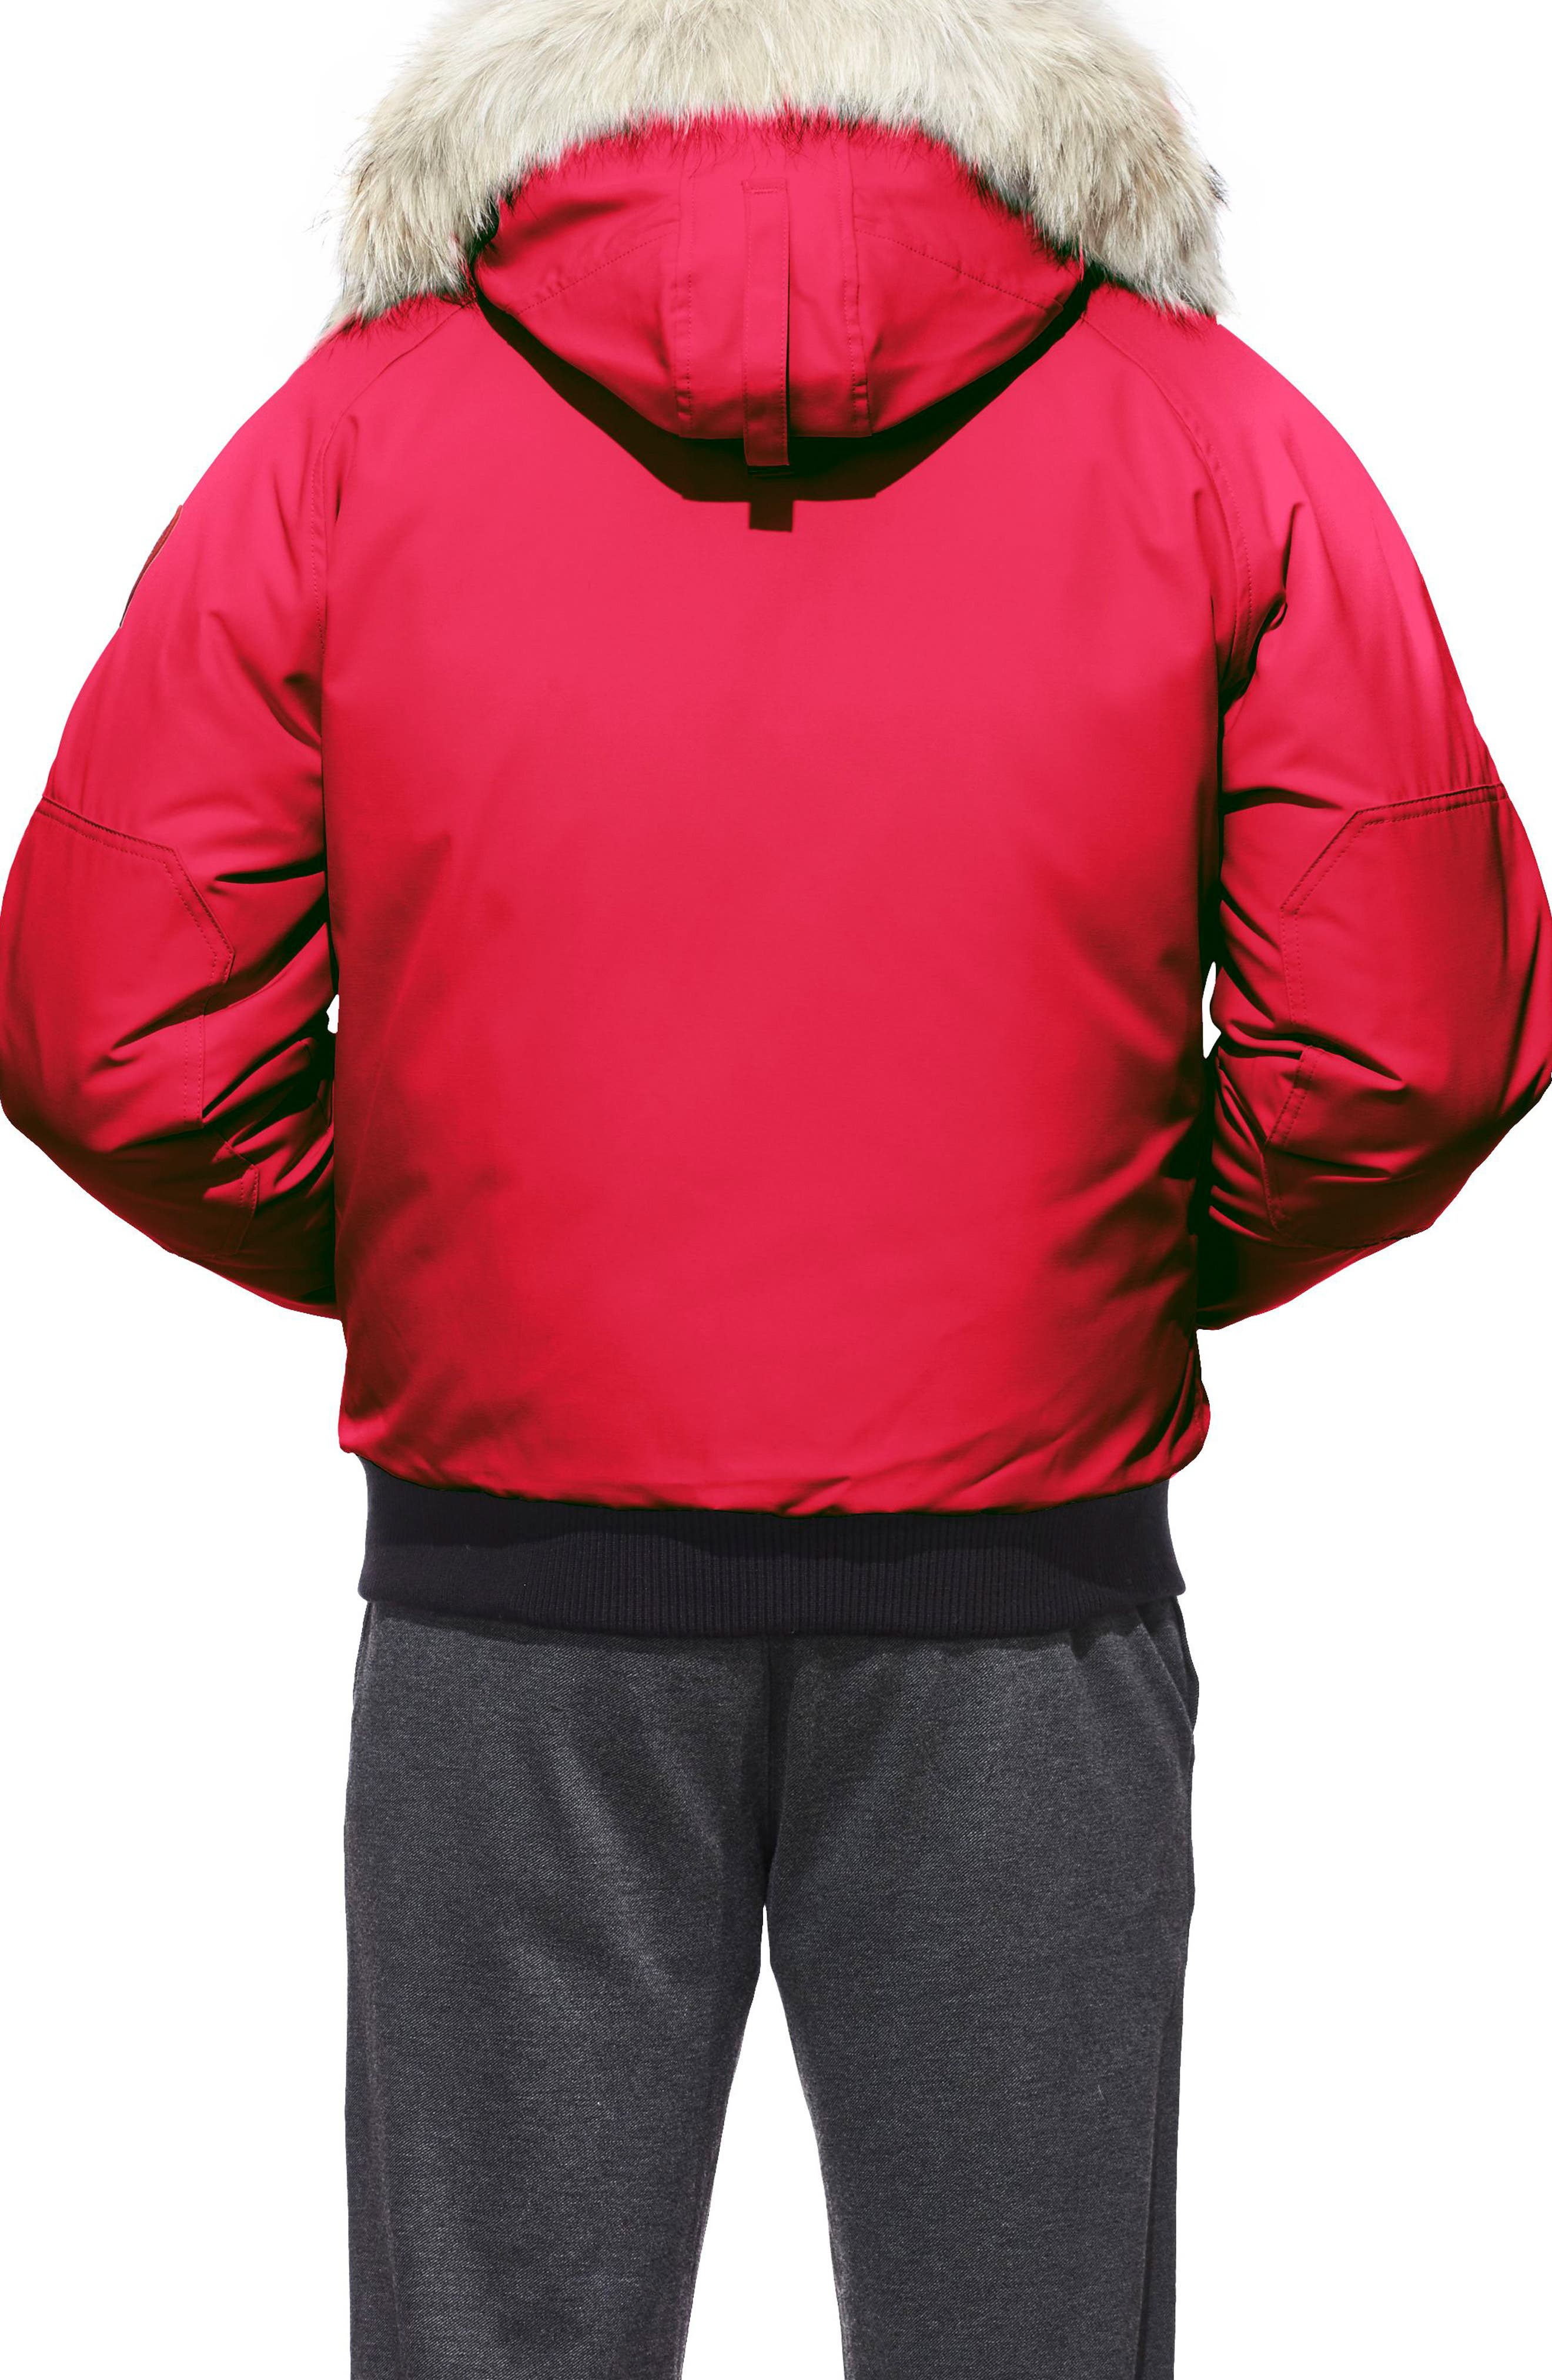 PBI Chilliwack Regular Fit Down Bomber Jacket with Genuine Coyote Trim,                             Alternate thumbnail 2, color,                             RED